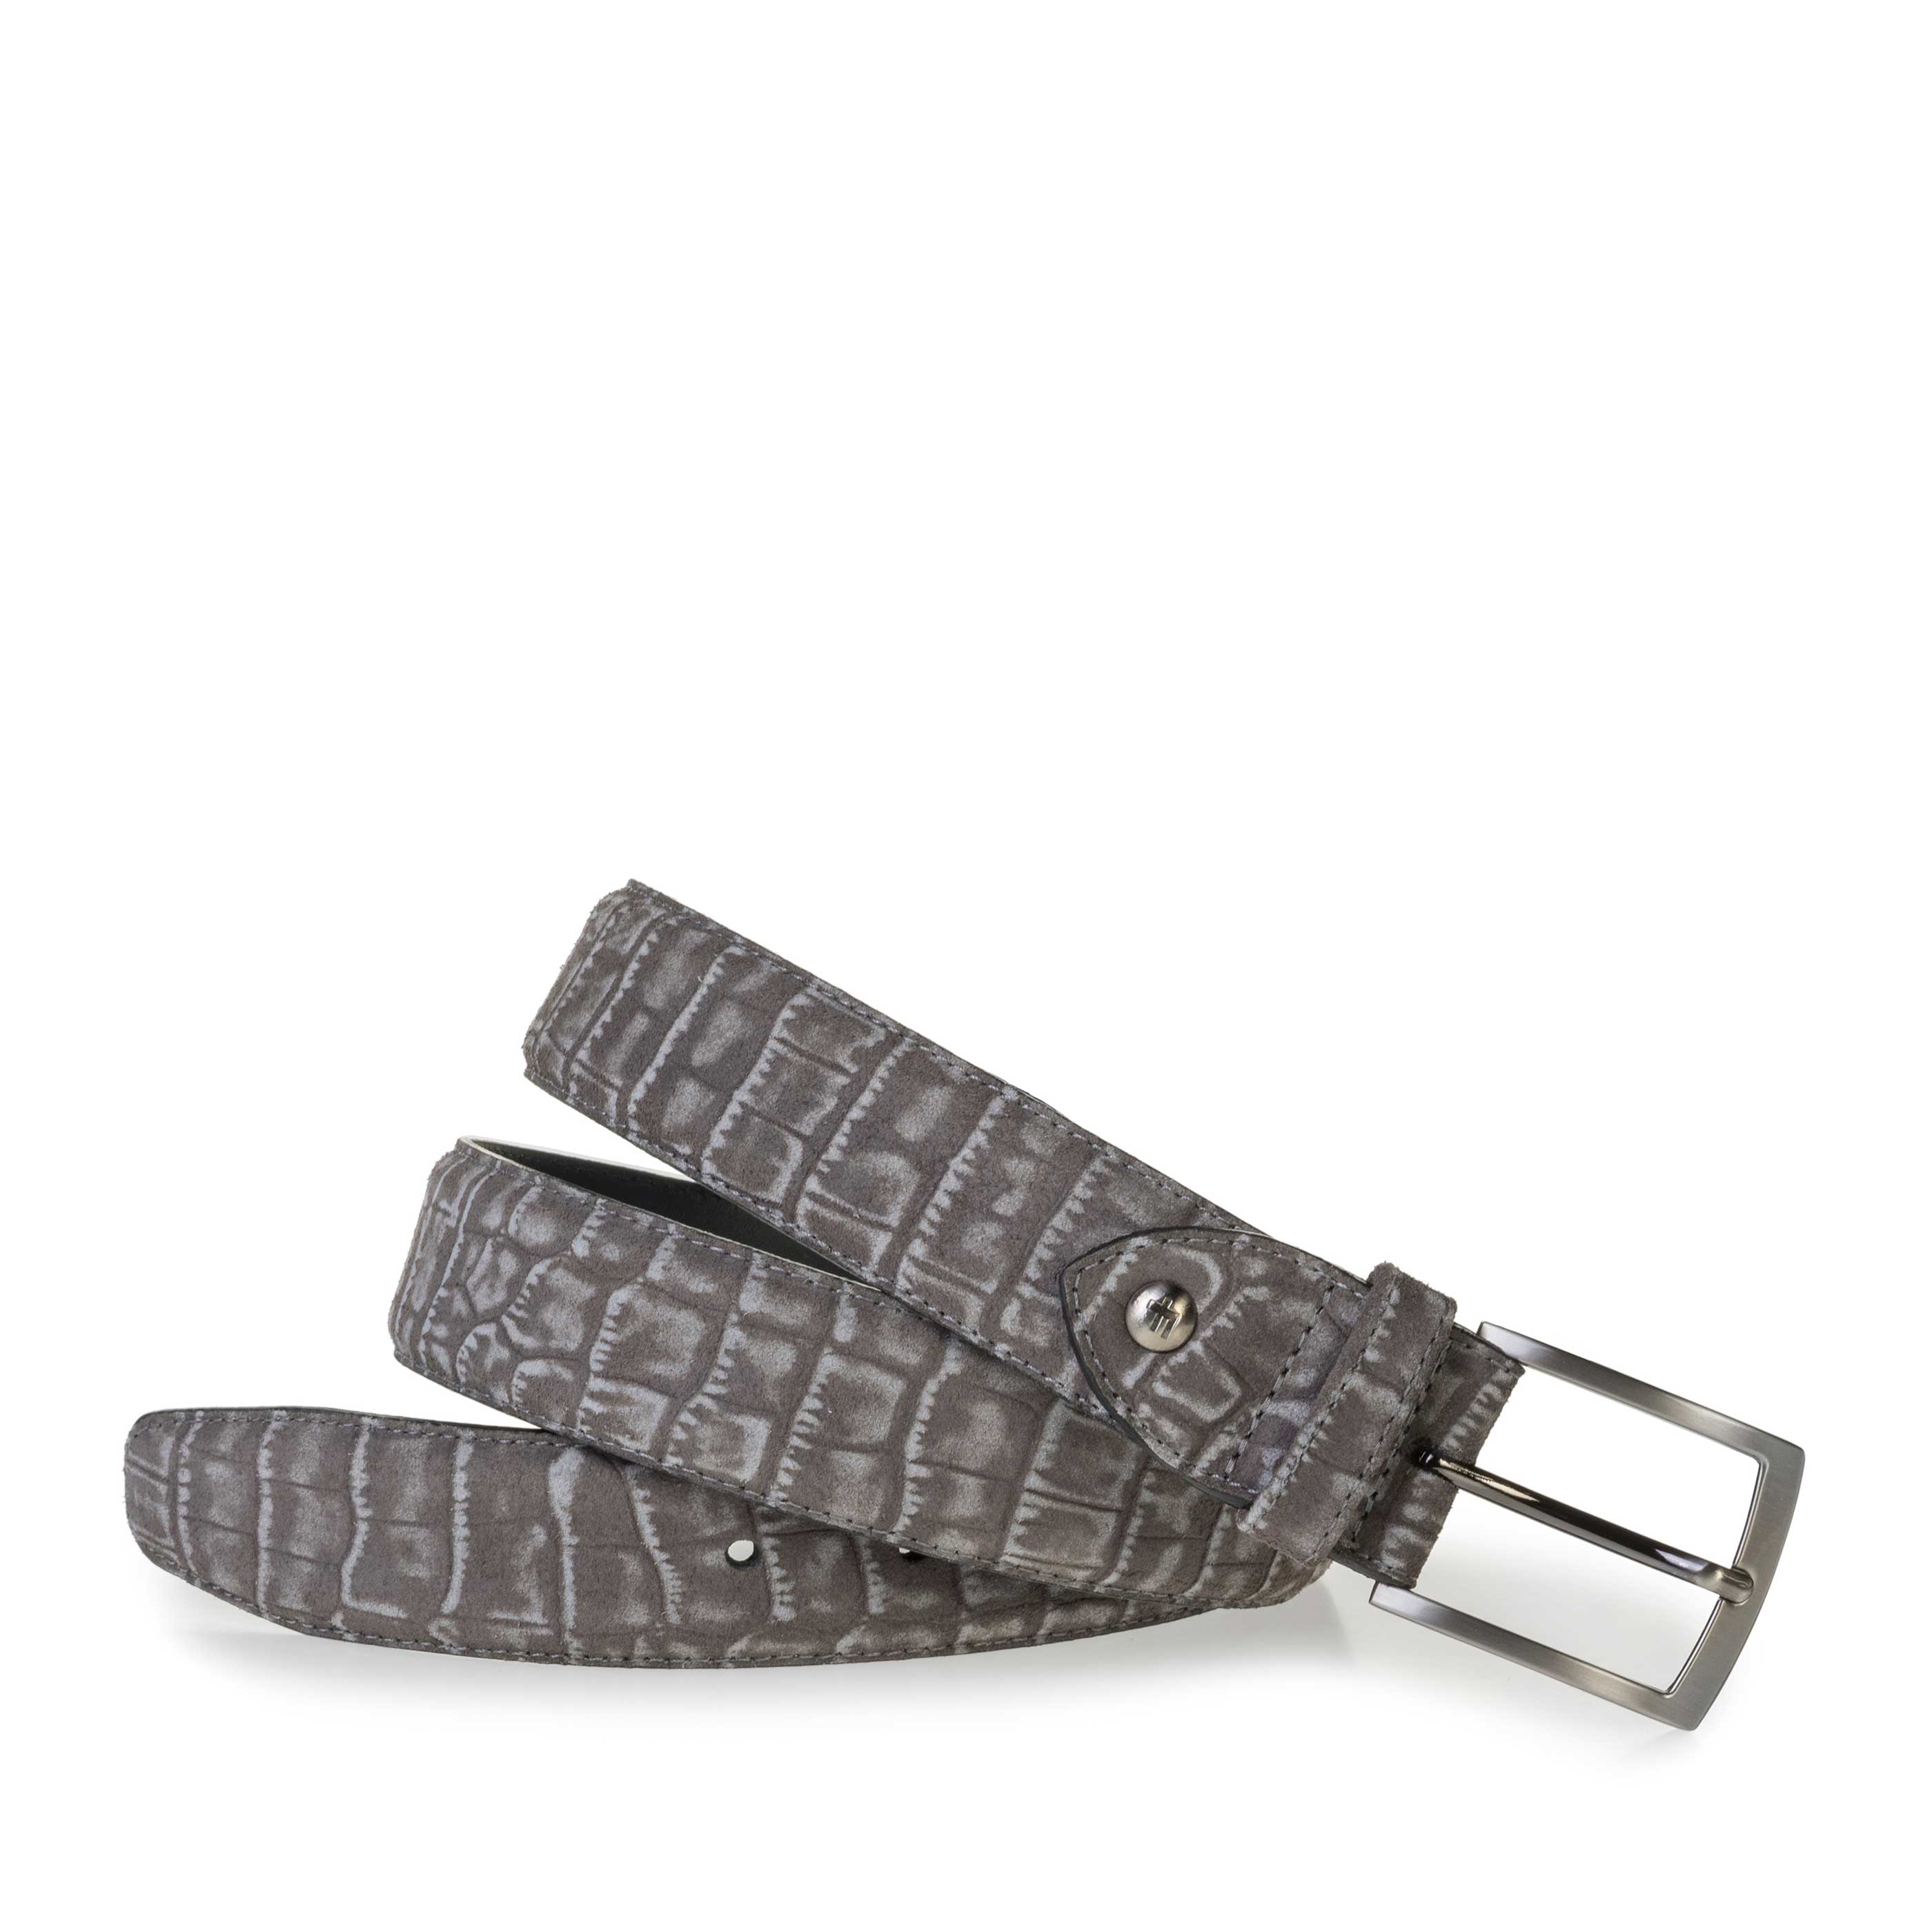 75201/81 - Dark grey suede leather belt with croco print